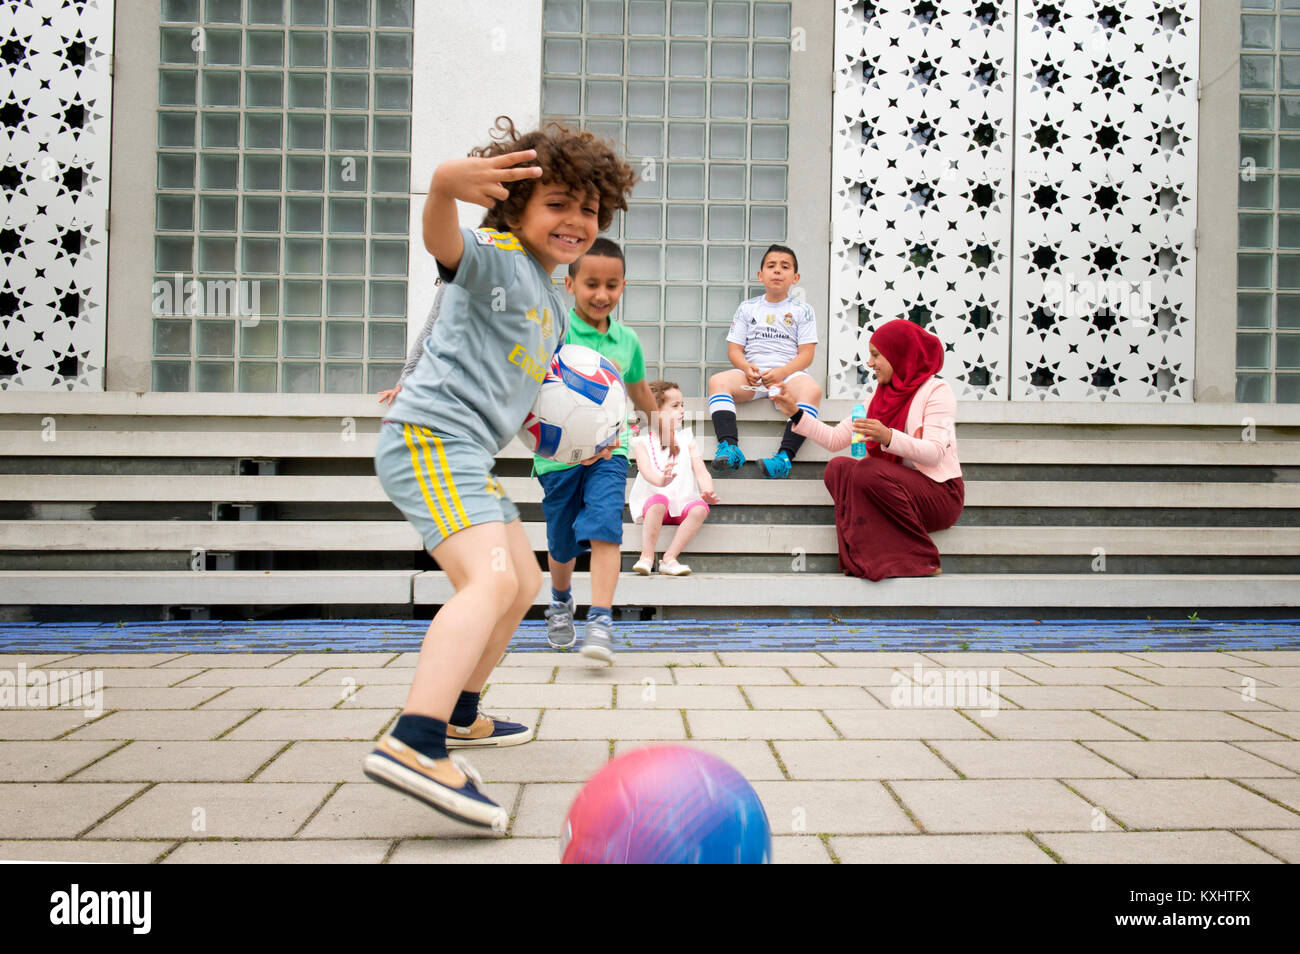 footbal morrocan kids in netherlands - Stock Image